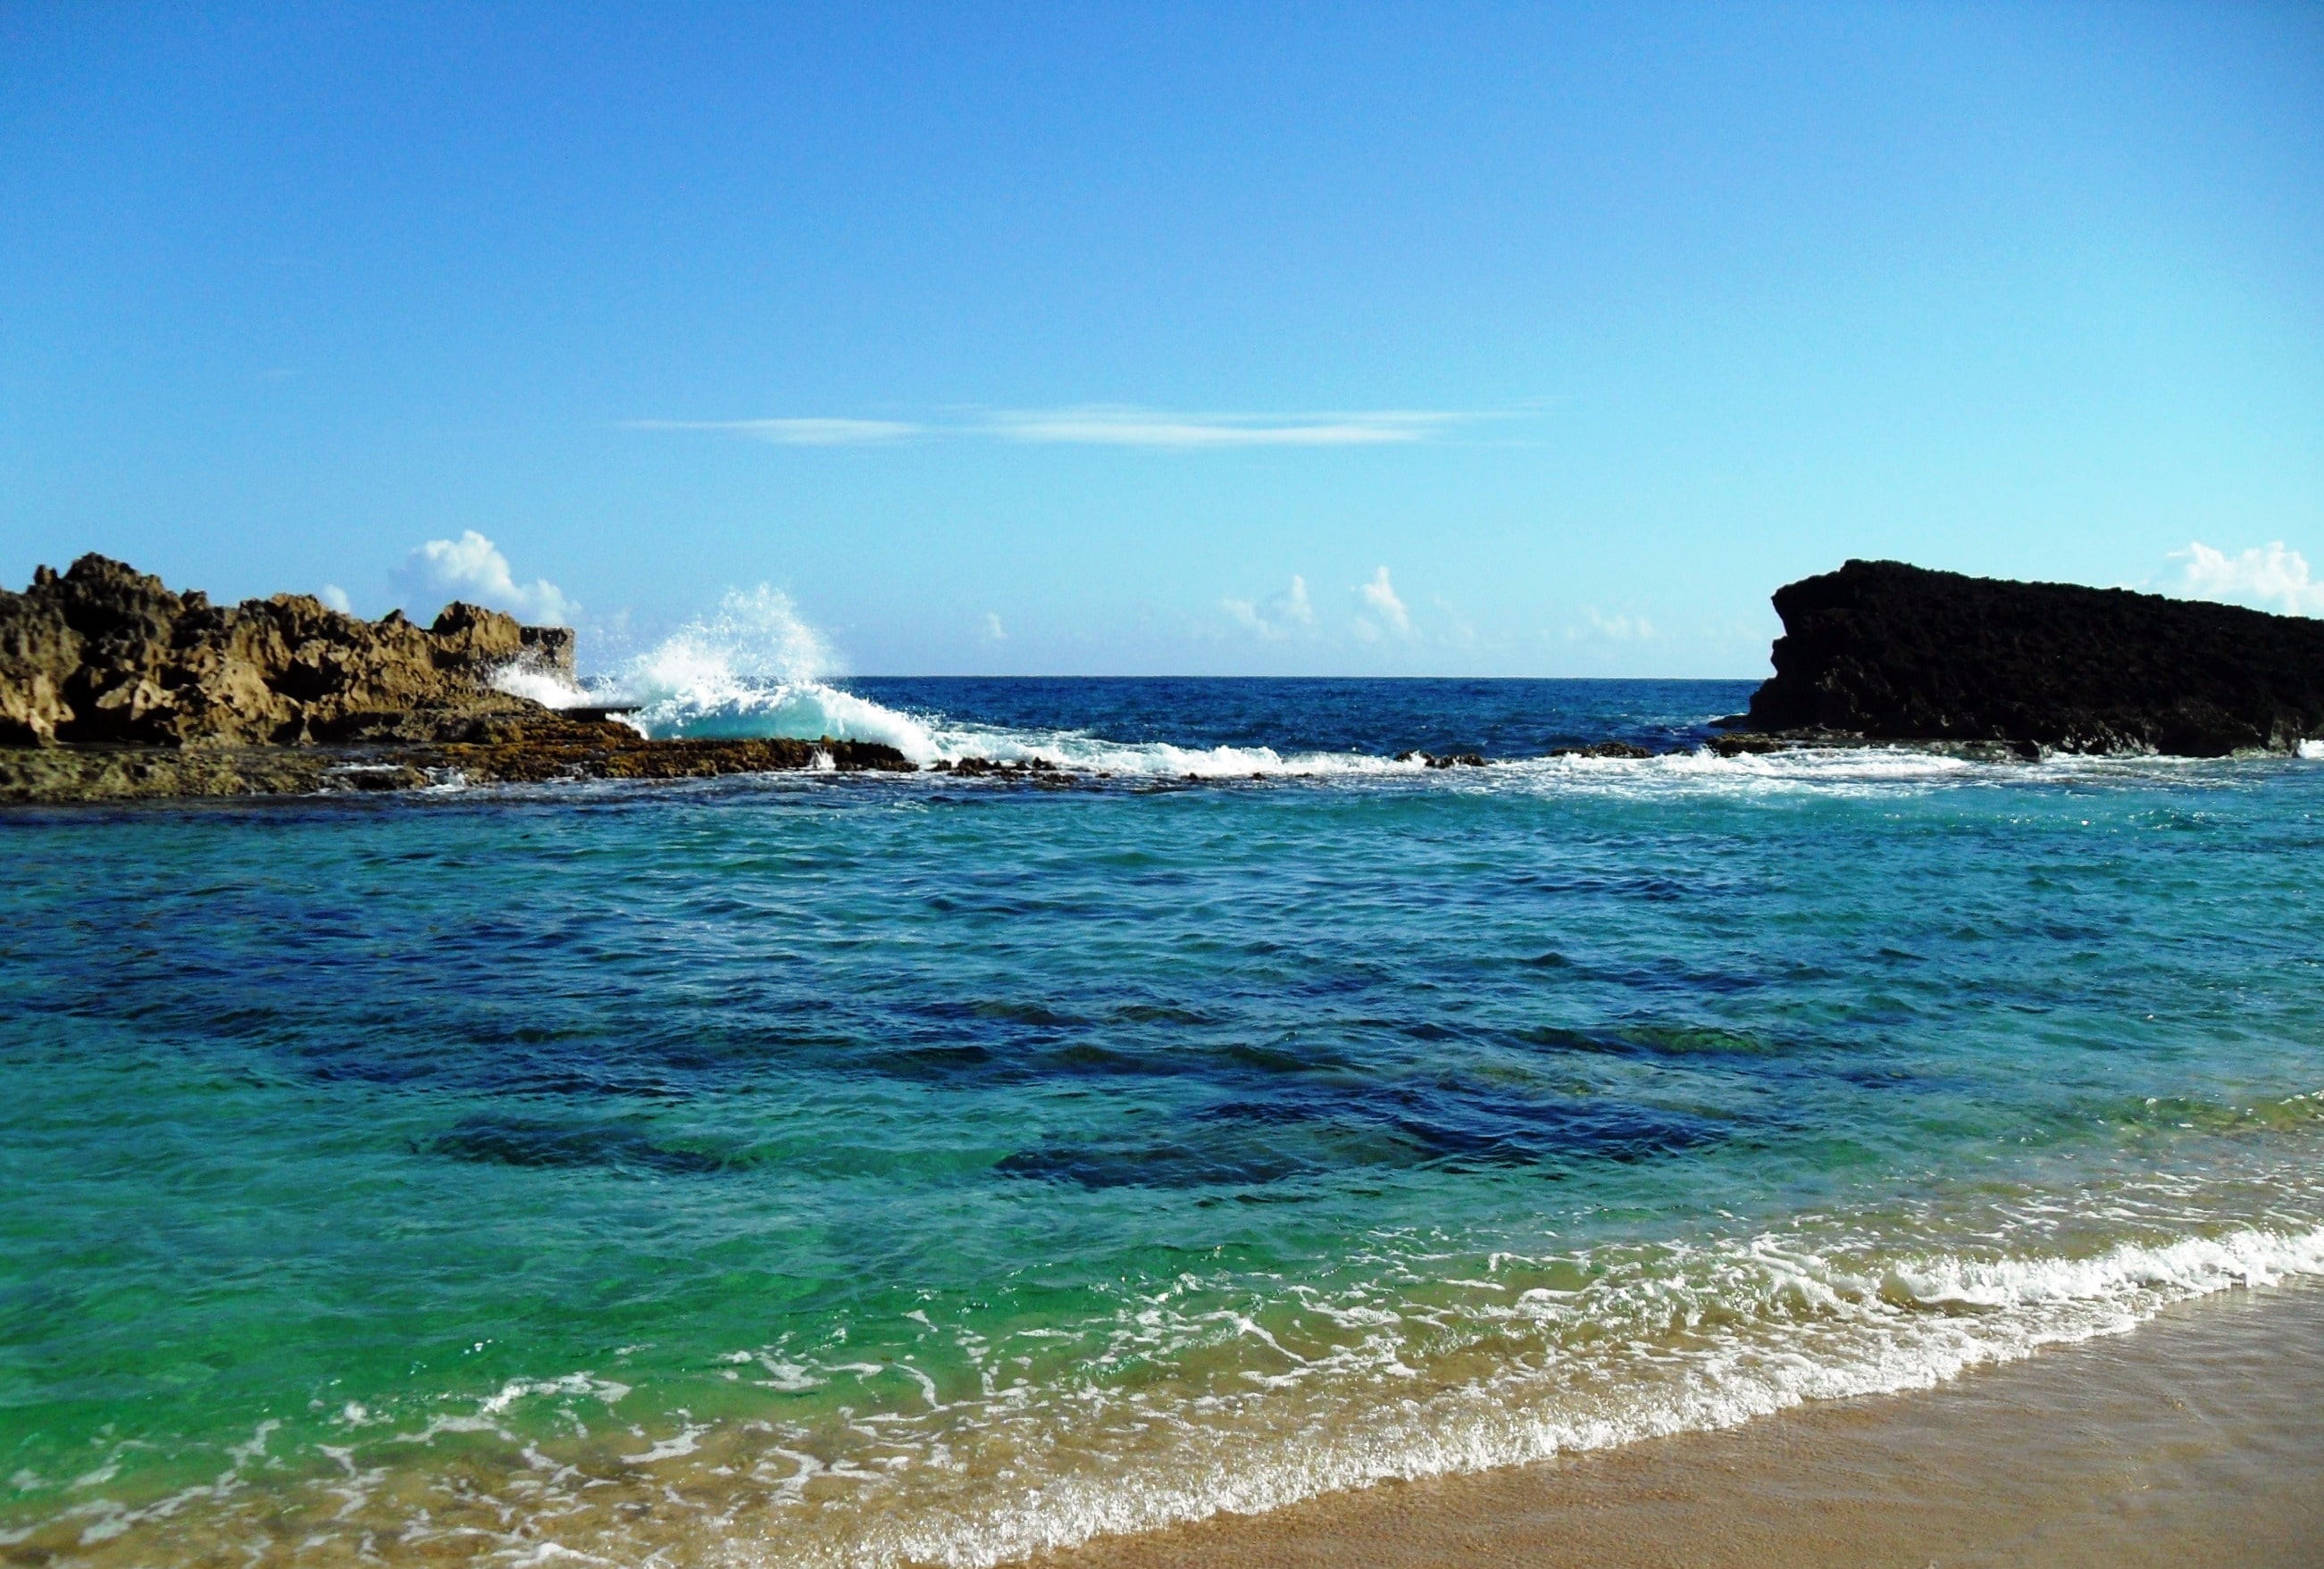 Arecibo is one of the things to add to your Puerto Rico itinerary